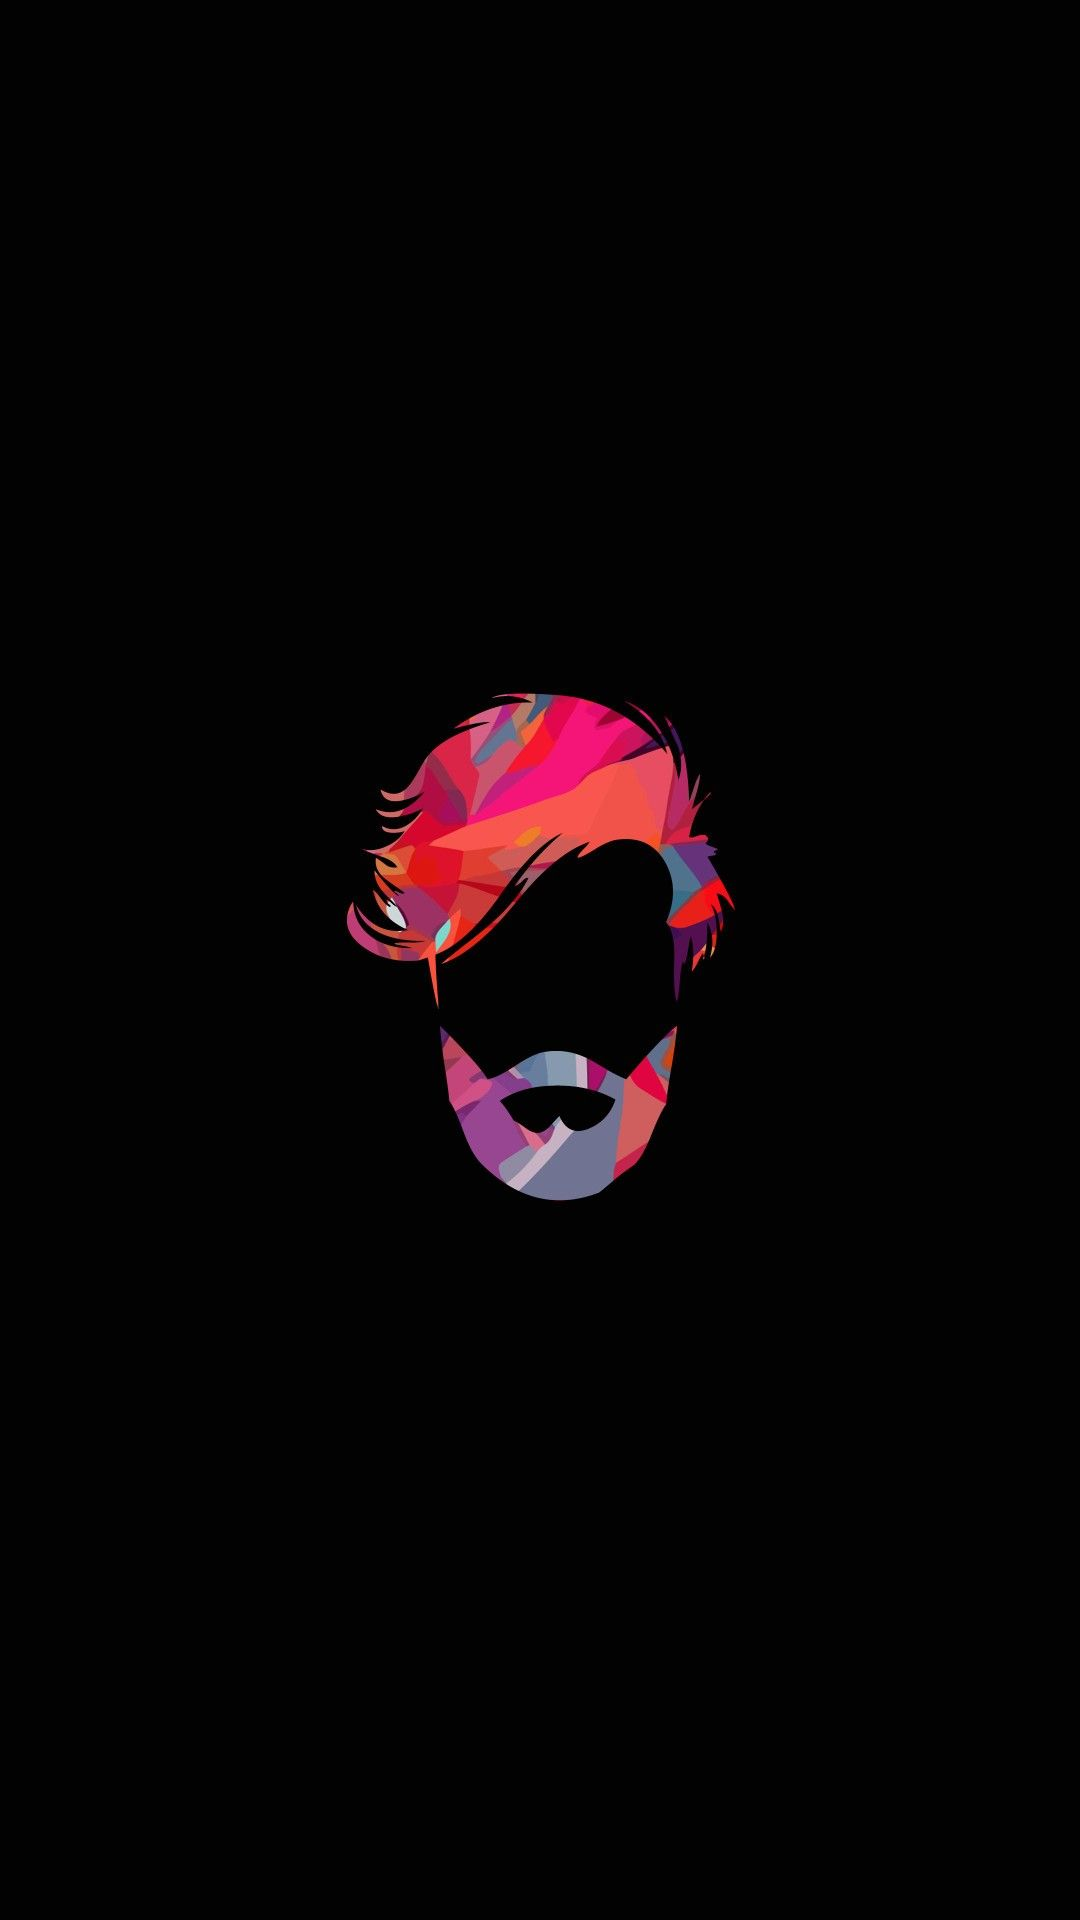 Beardo Chill With Images Oneplus Wallpapers Beard Wallpaper Painting Wallpaper